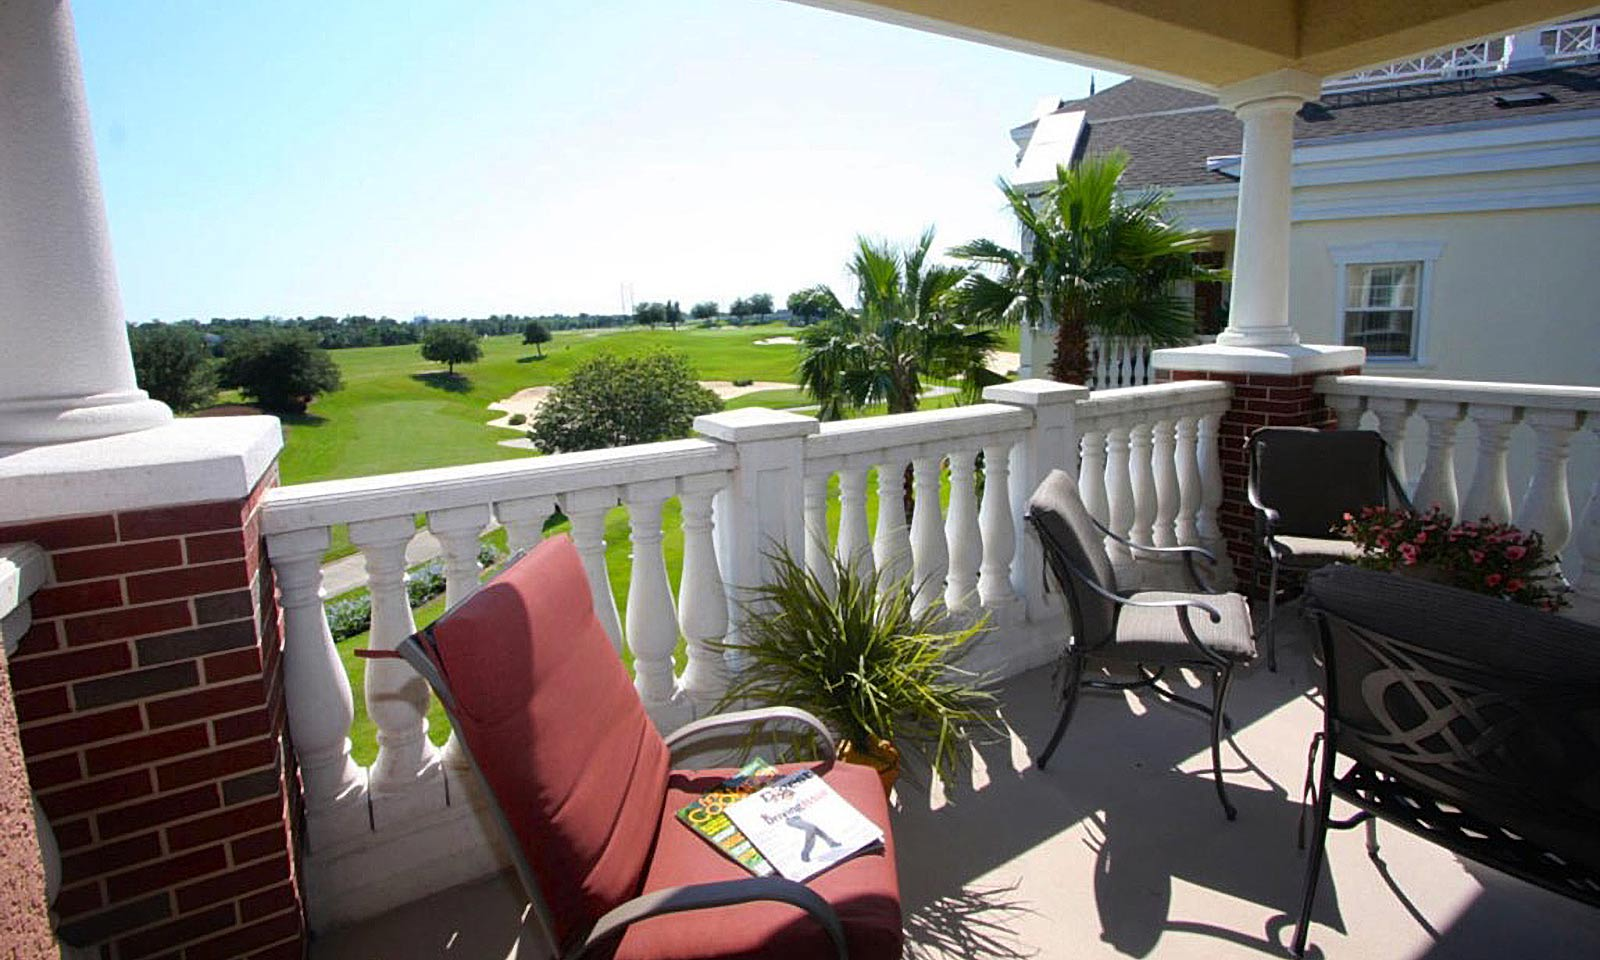 [amenities:Balcony-with-Golf-View:1] Balcony with Golf View